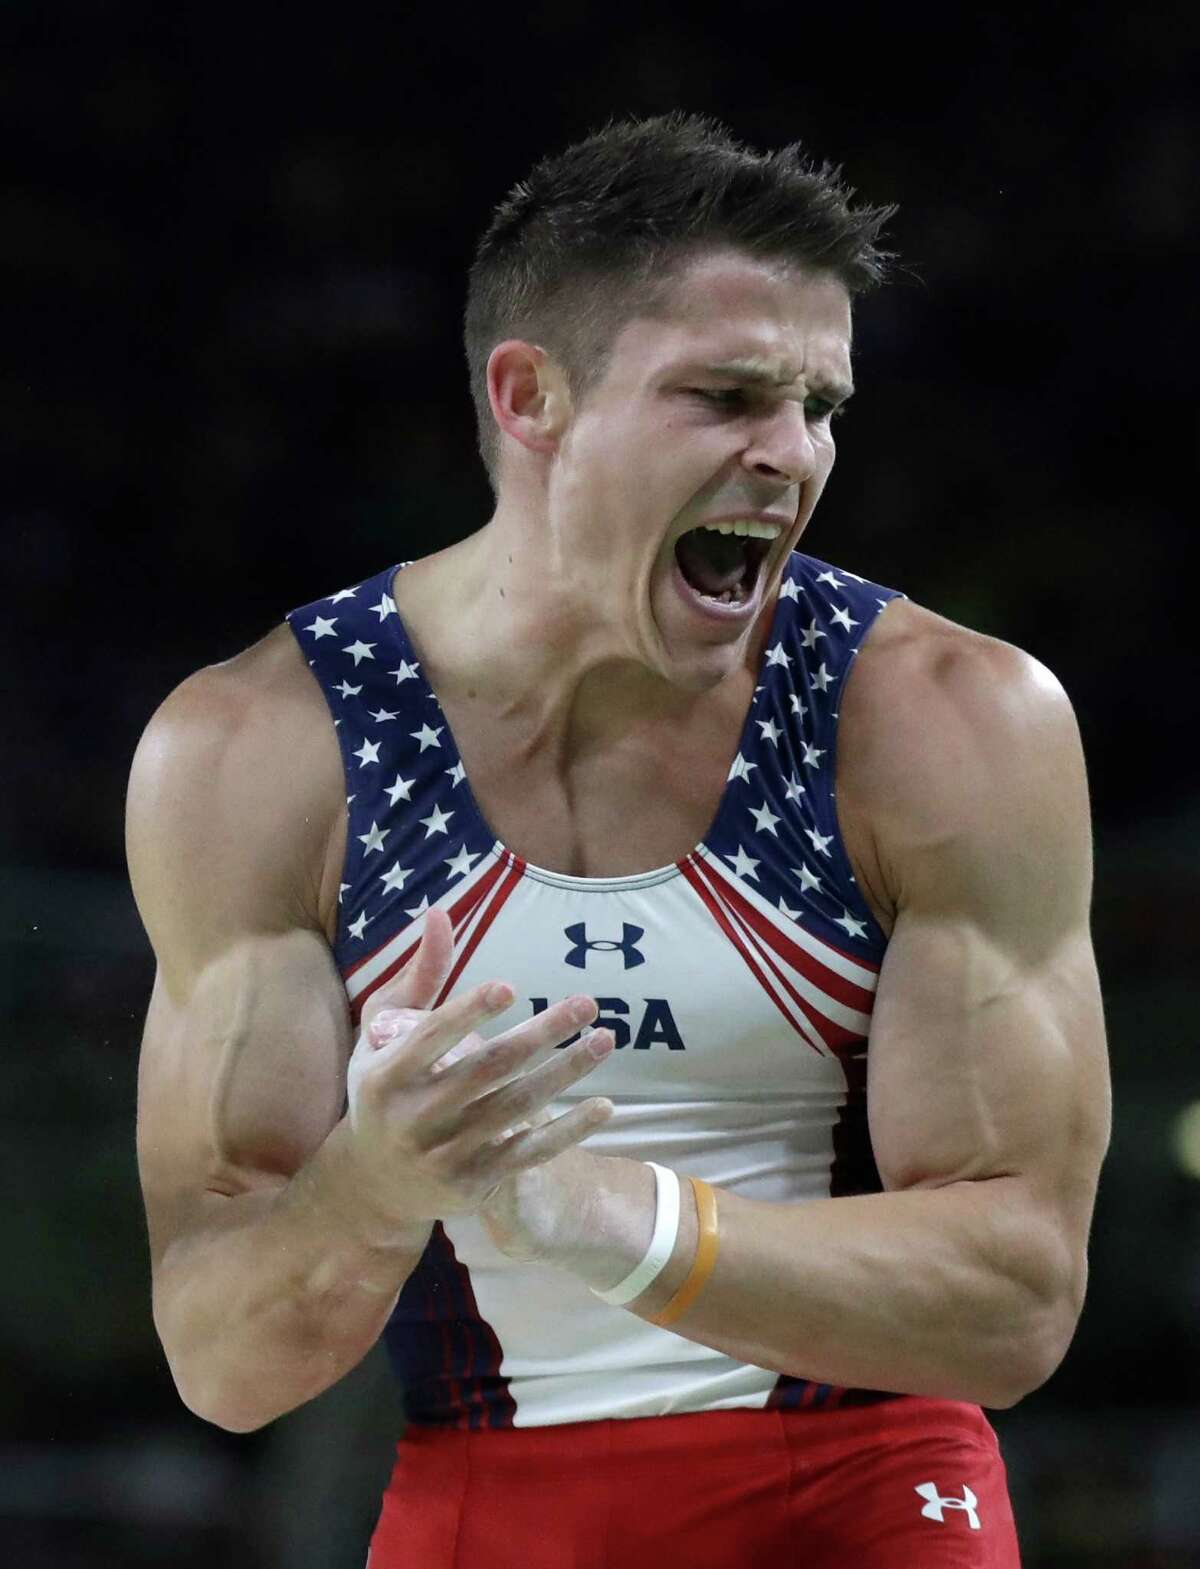 U.S. captain Chris Brooks did not make any event finals, but he did qualify for the all-around final and helped the Americans reach the team final.